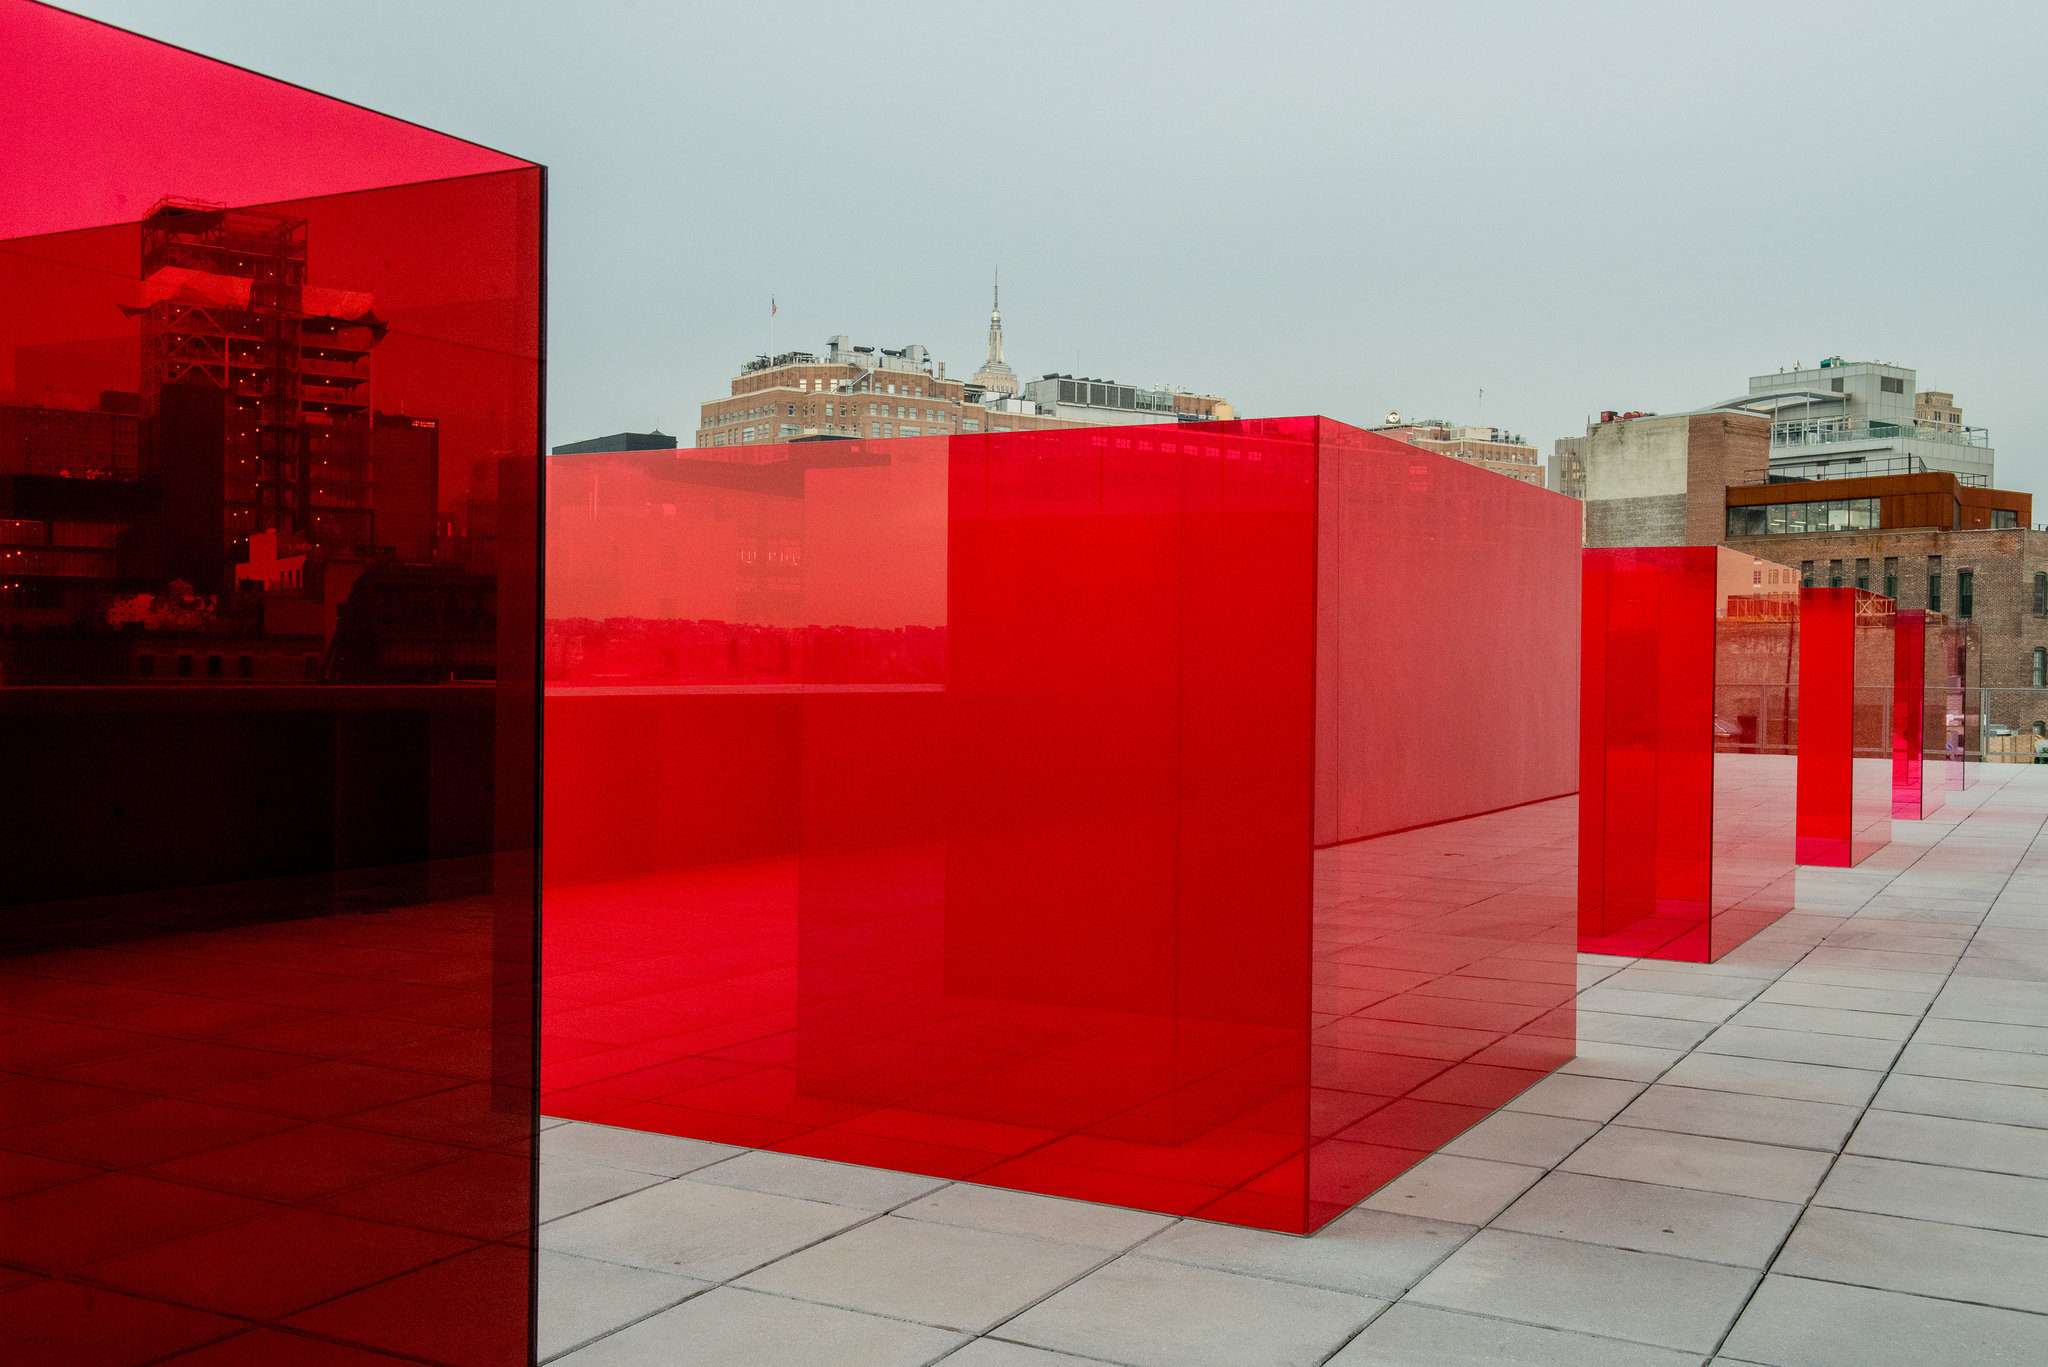 Laminated glass boxes by the West Coast artist  Larry Bell , part of the Whitney Biennial at the Whitney Museum of American Art.CreditCollection of the artist; courtesy Hauser Wirth & Schimmel, Los Angeles; Photograph by George Etheredge for The New York Times